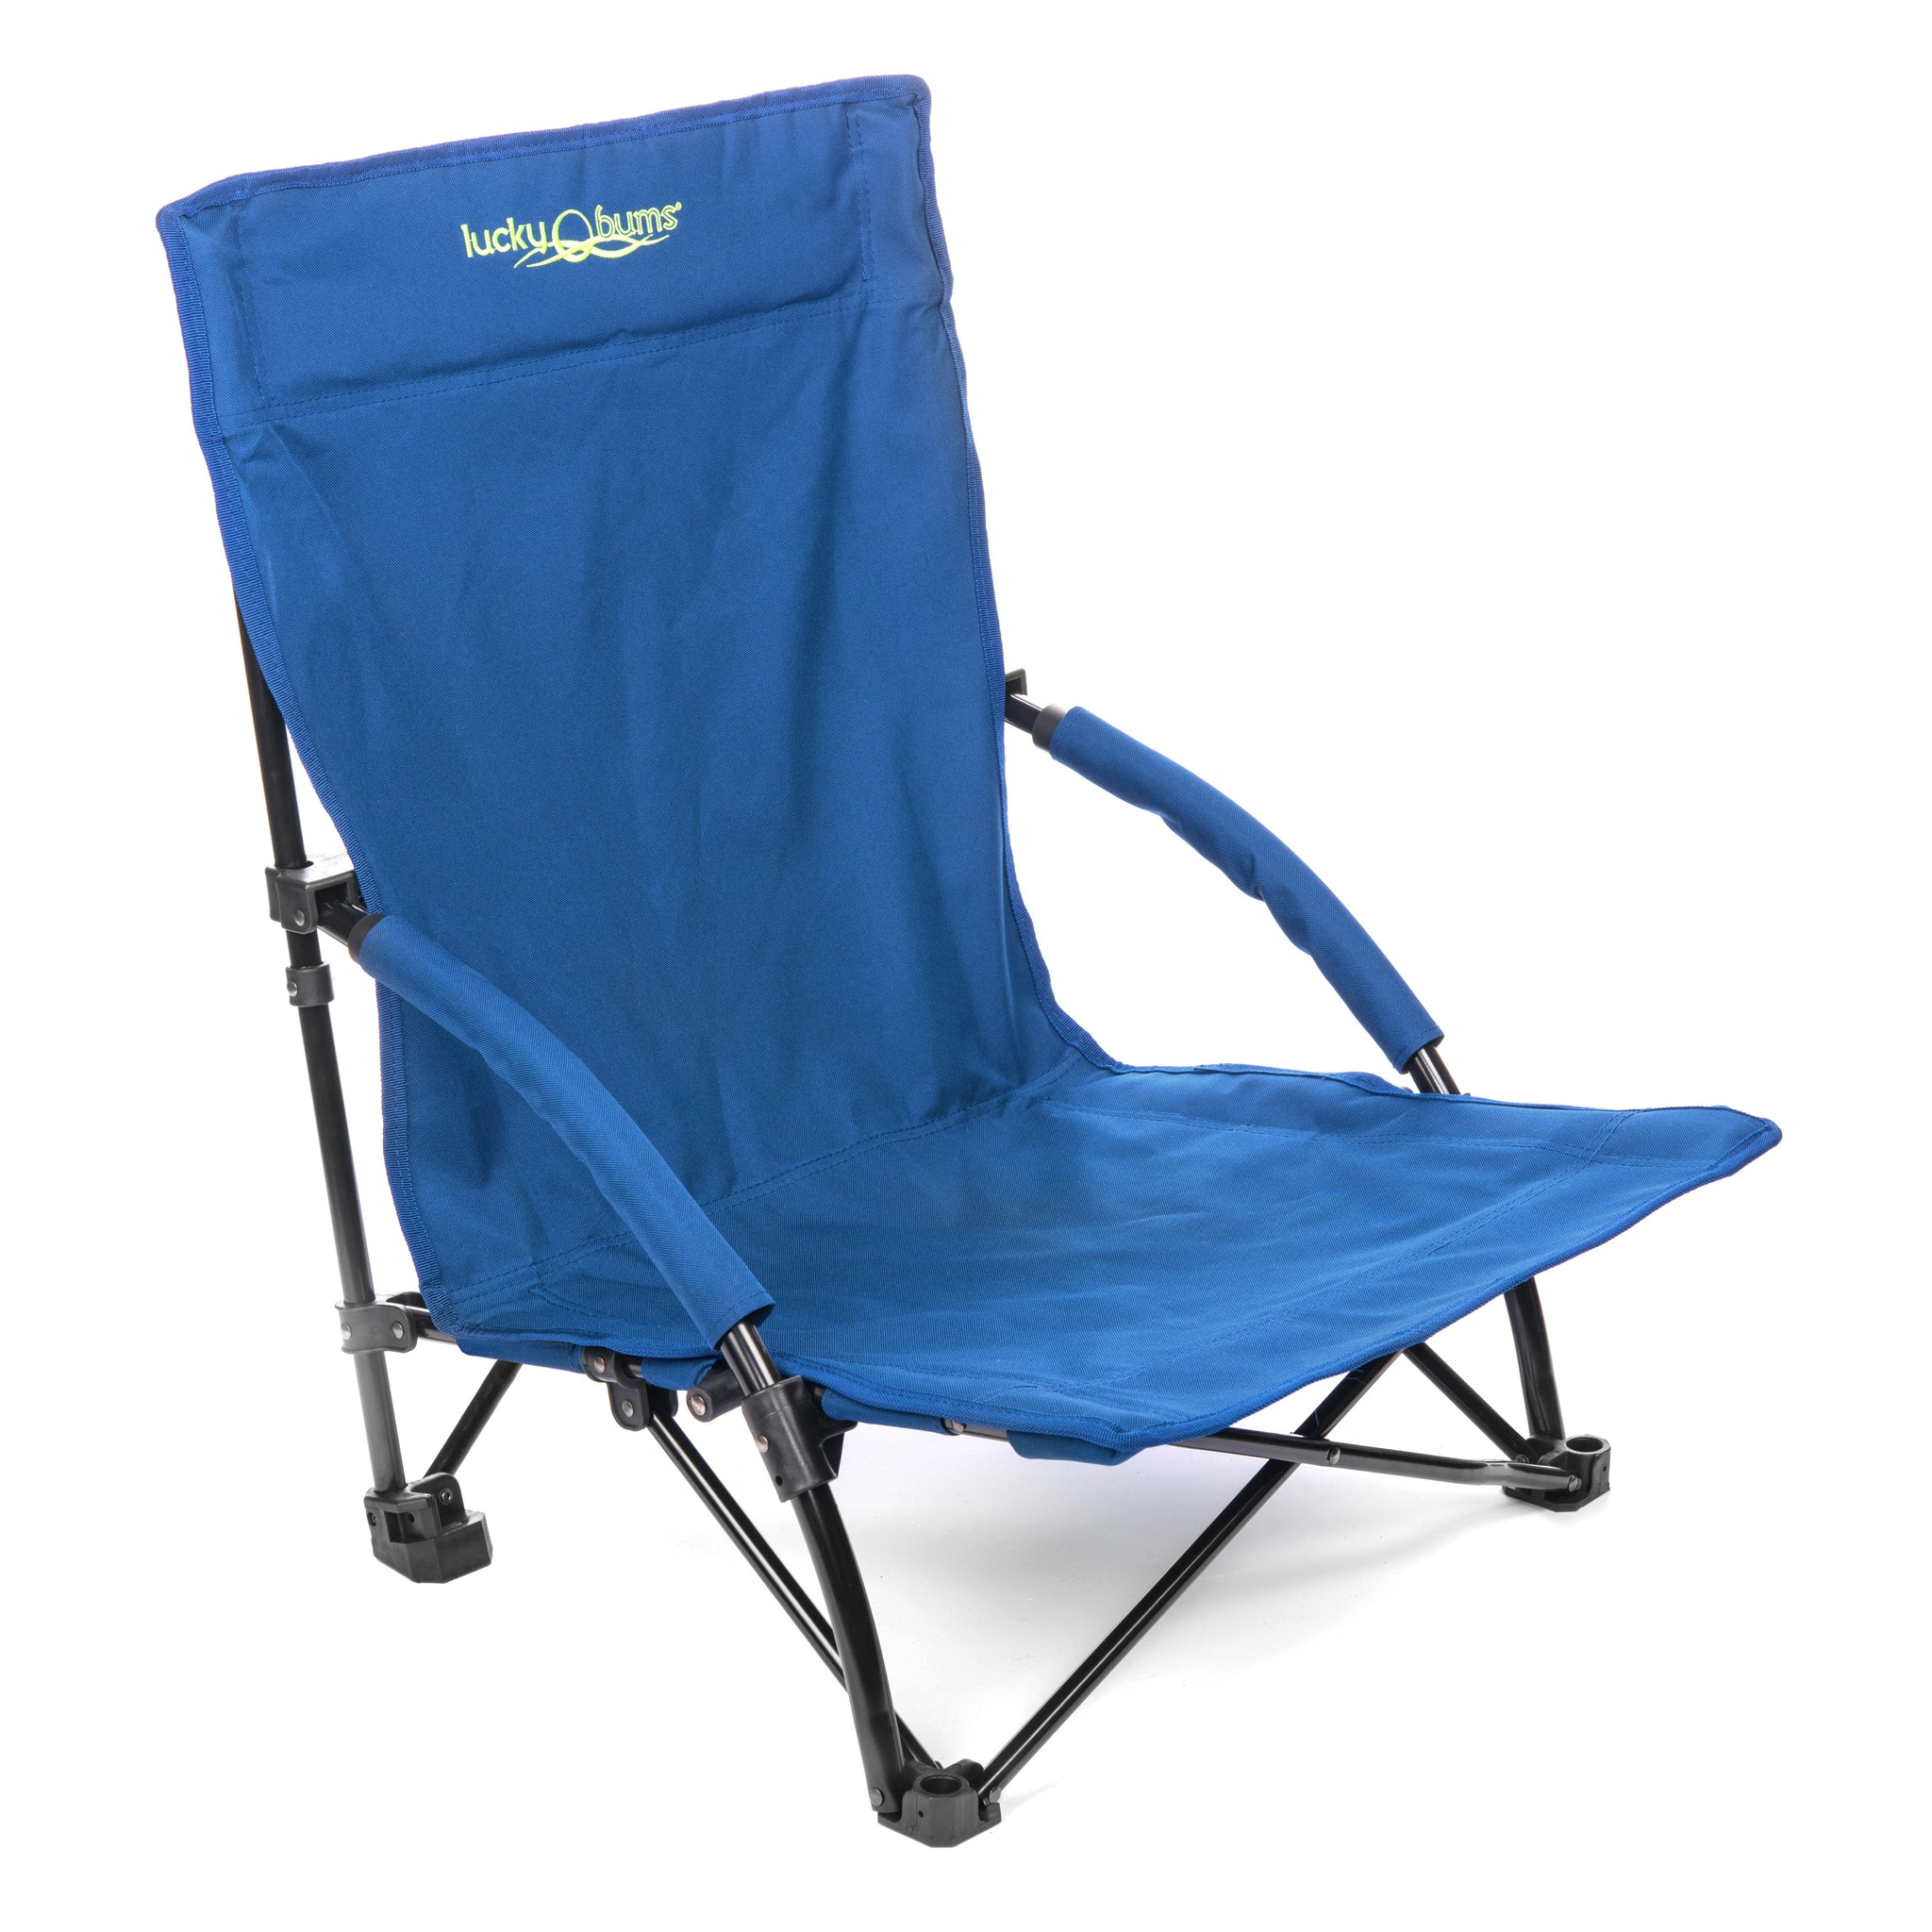 the luxury of folding chair beach ignite show chaise chairs lounge elegant ideas